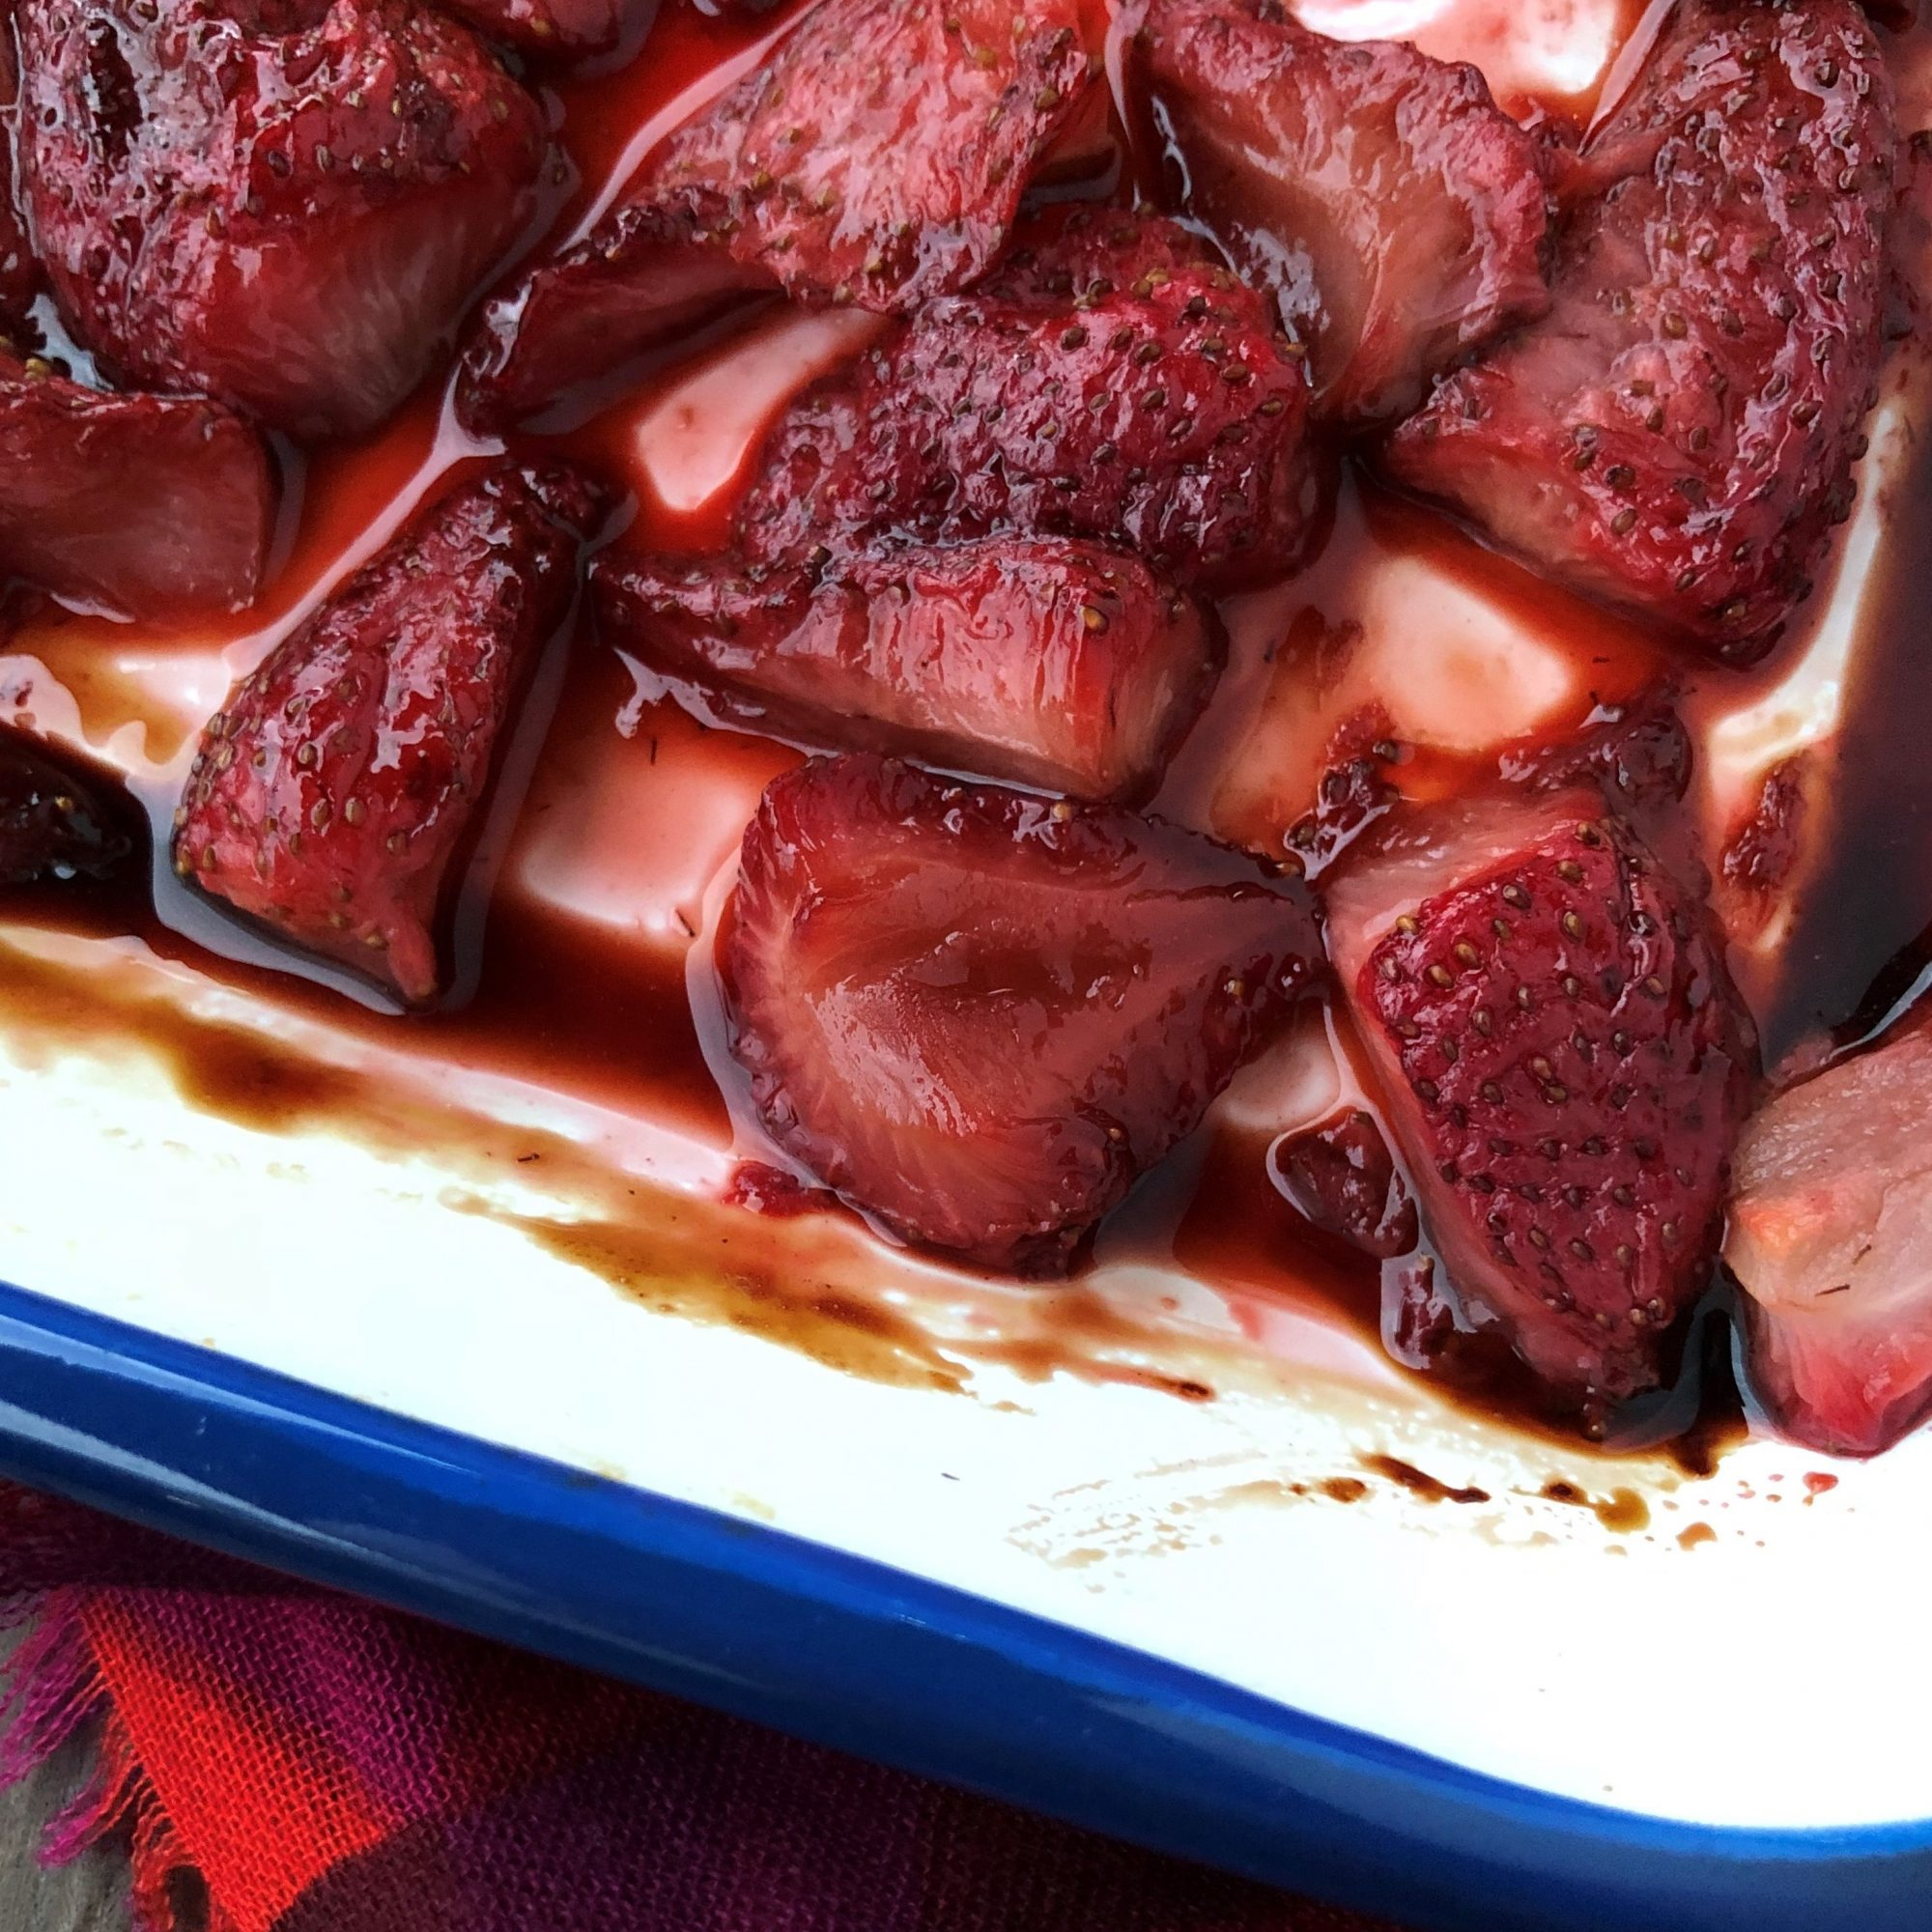 a baking dish of baked strawberries with balsamic vinegar